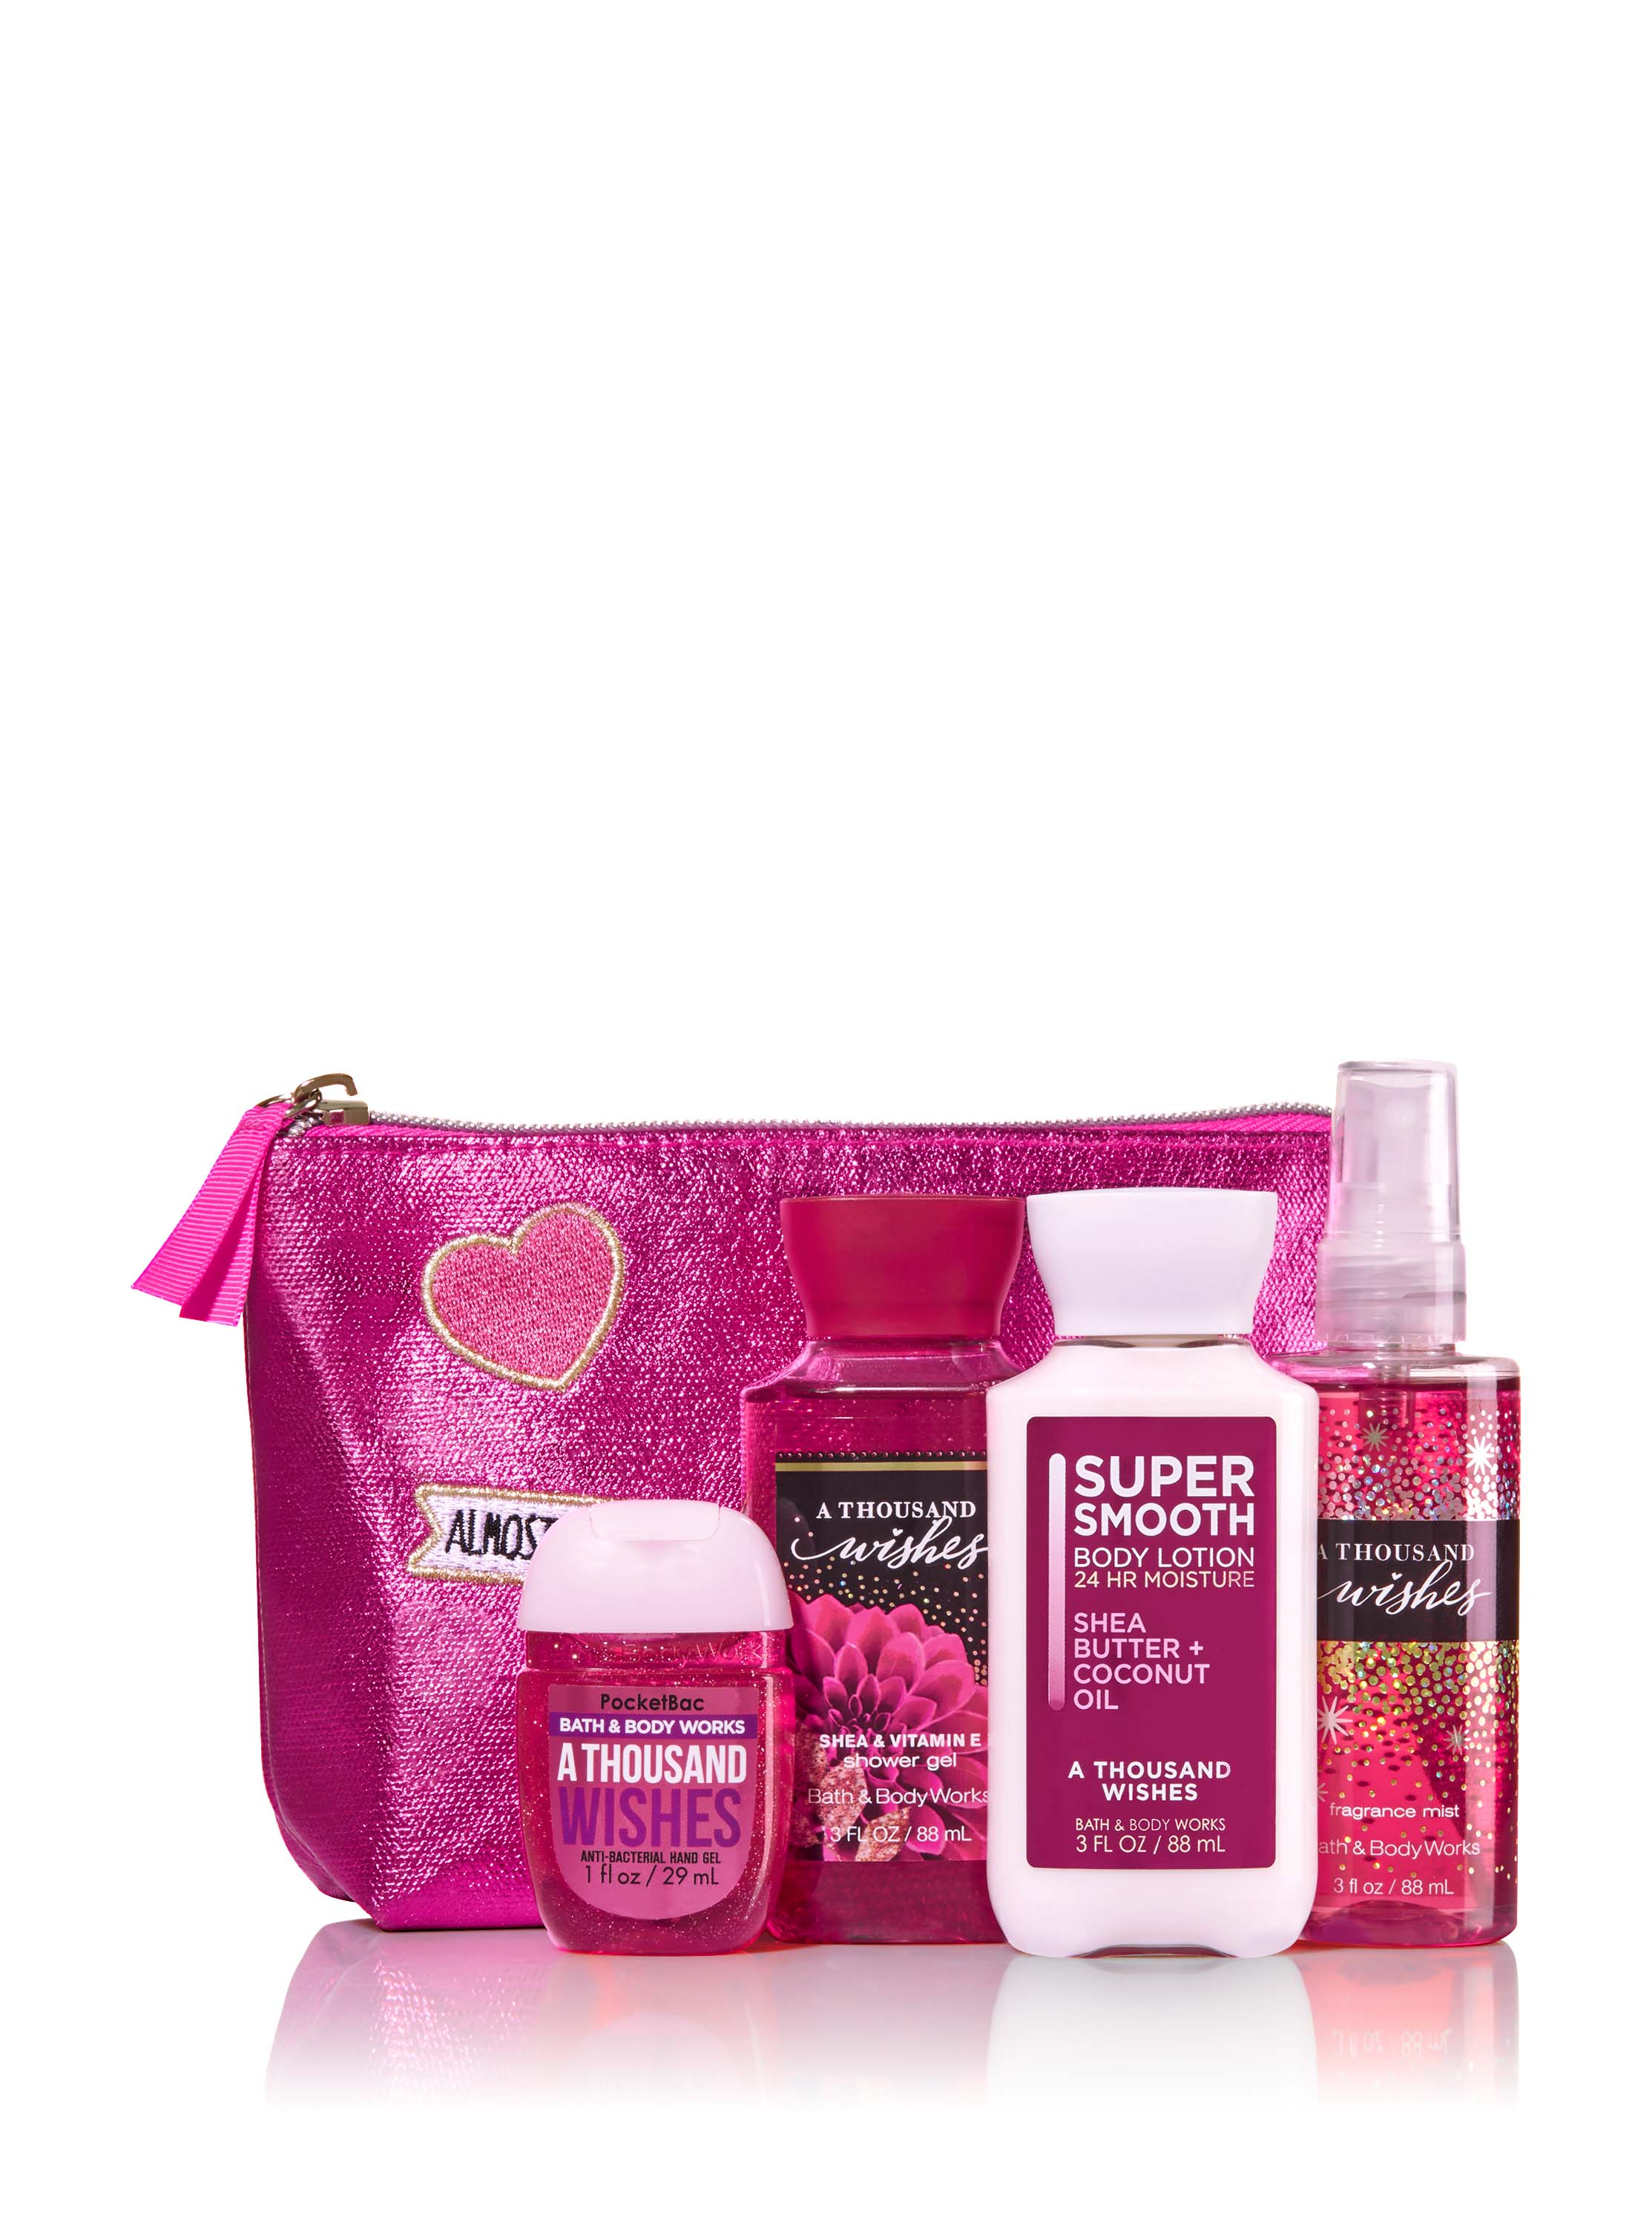 3Bath u0026 Body Works A Thousand Wishes Perfect In Pink Gift Set $20.50  sc 1 st  HelloGiggles & 15 Bath u0026 Body Works holiday products to shop for this Christmas ...